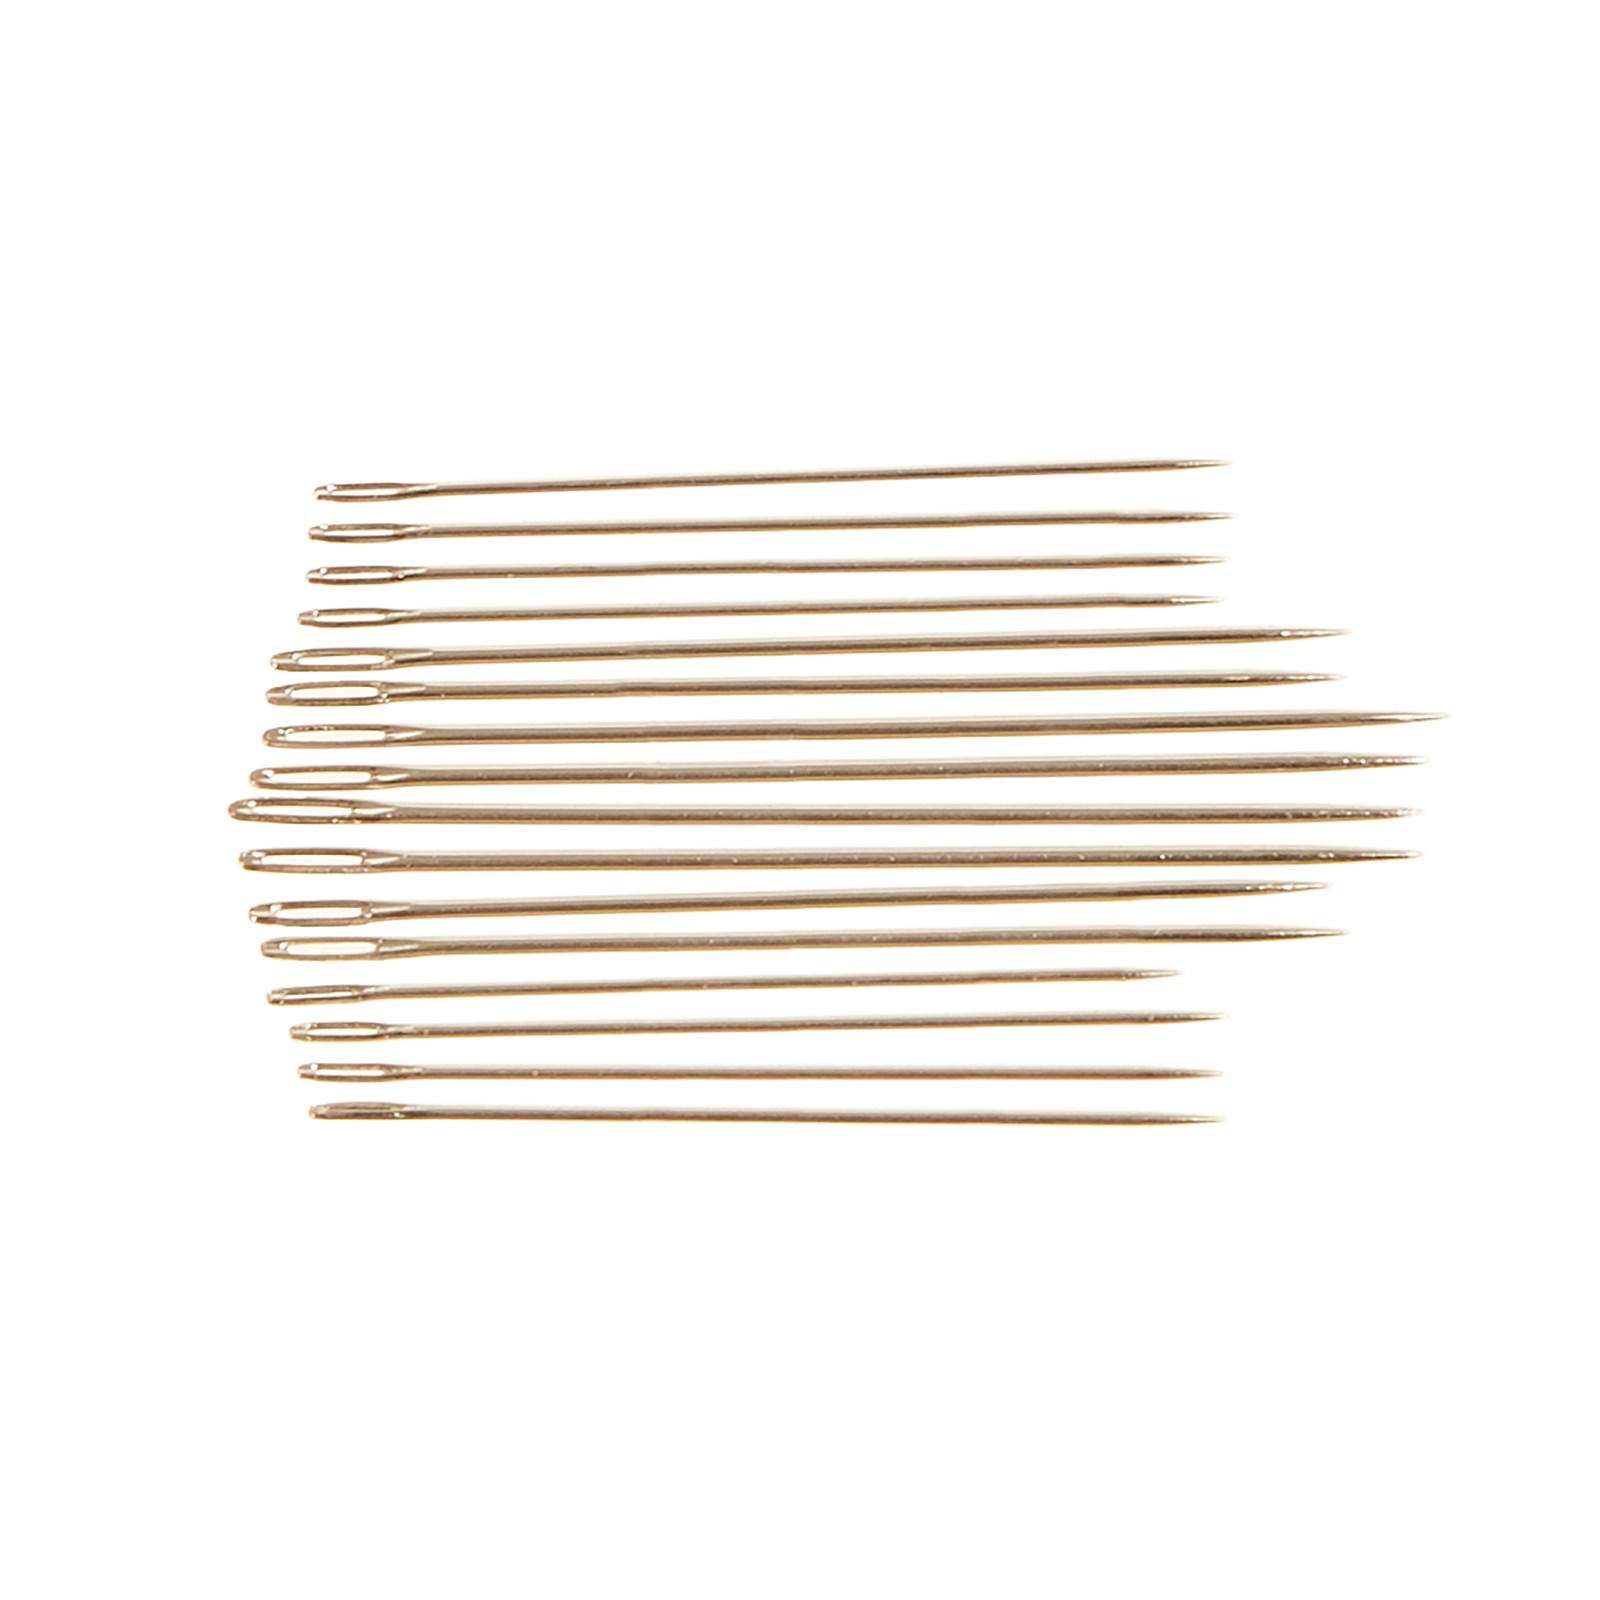 Embroidery Crewel Needles Sizes 3 to 9 - Pack of 5